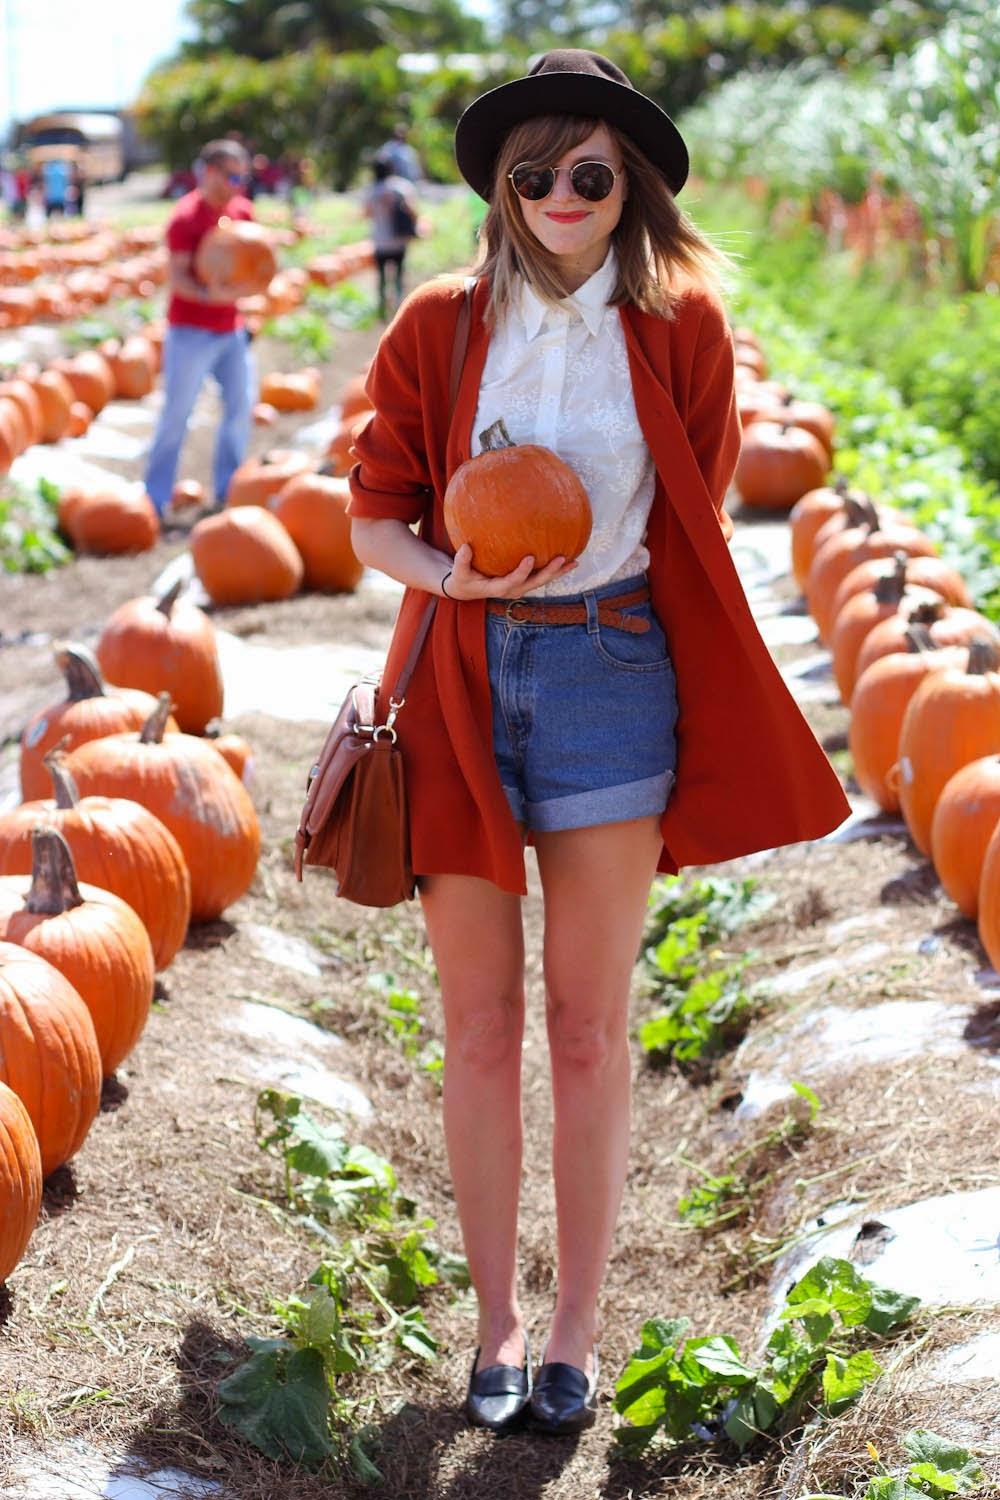 nyc vintage blog, vintage fashion blog, nyc fashion blog, fall outfit, vintage cutoffs, pumpkin patch style